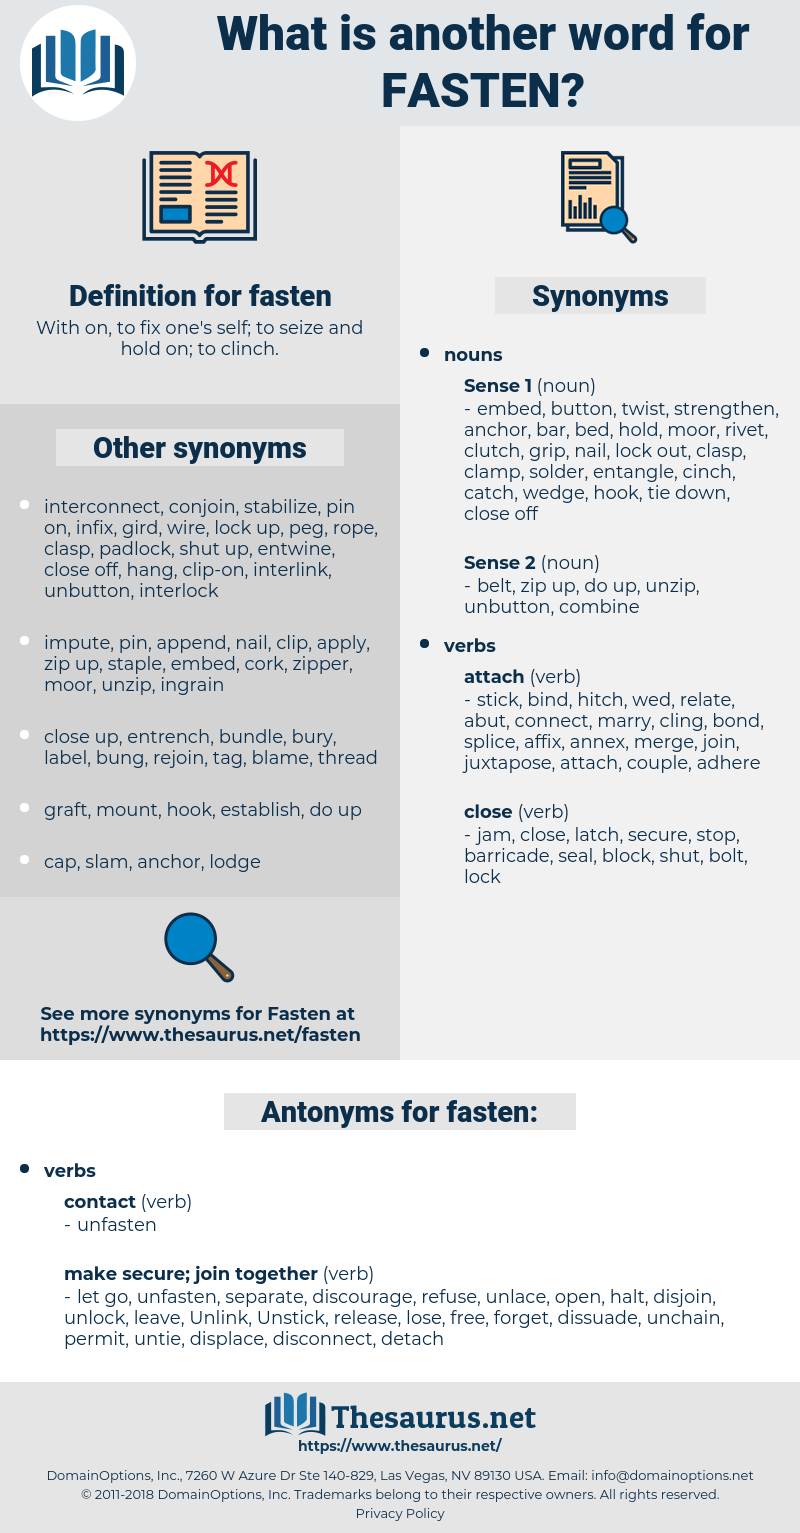 fasten, synonym fasten, another word for fasten, words like fasten, thesaurus fasten